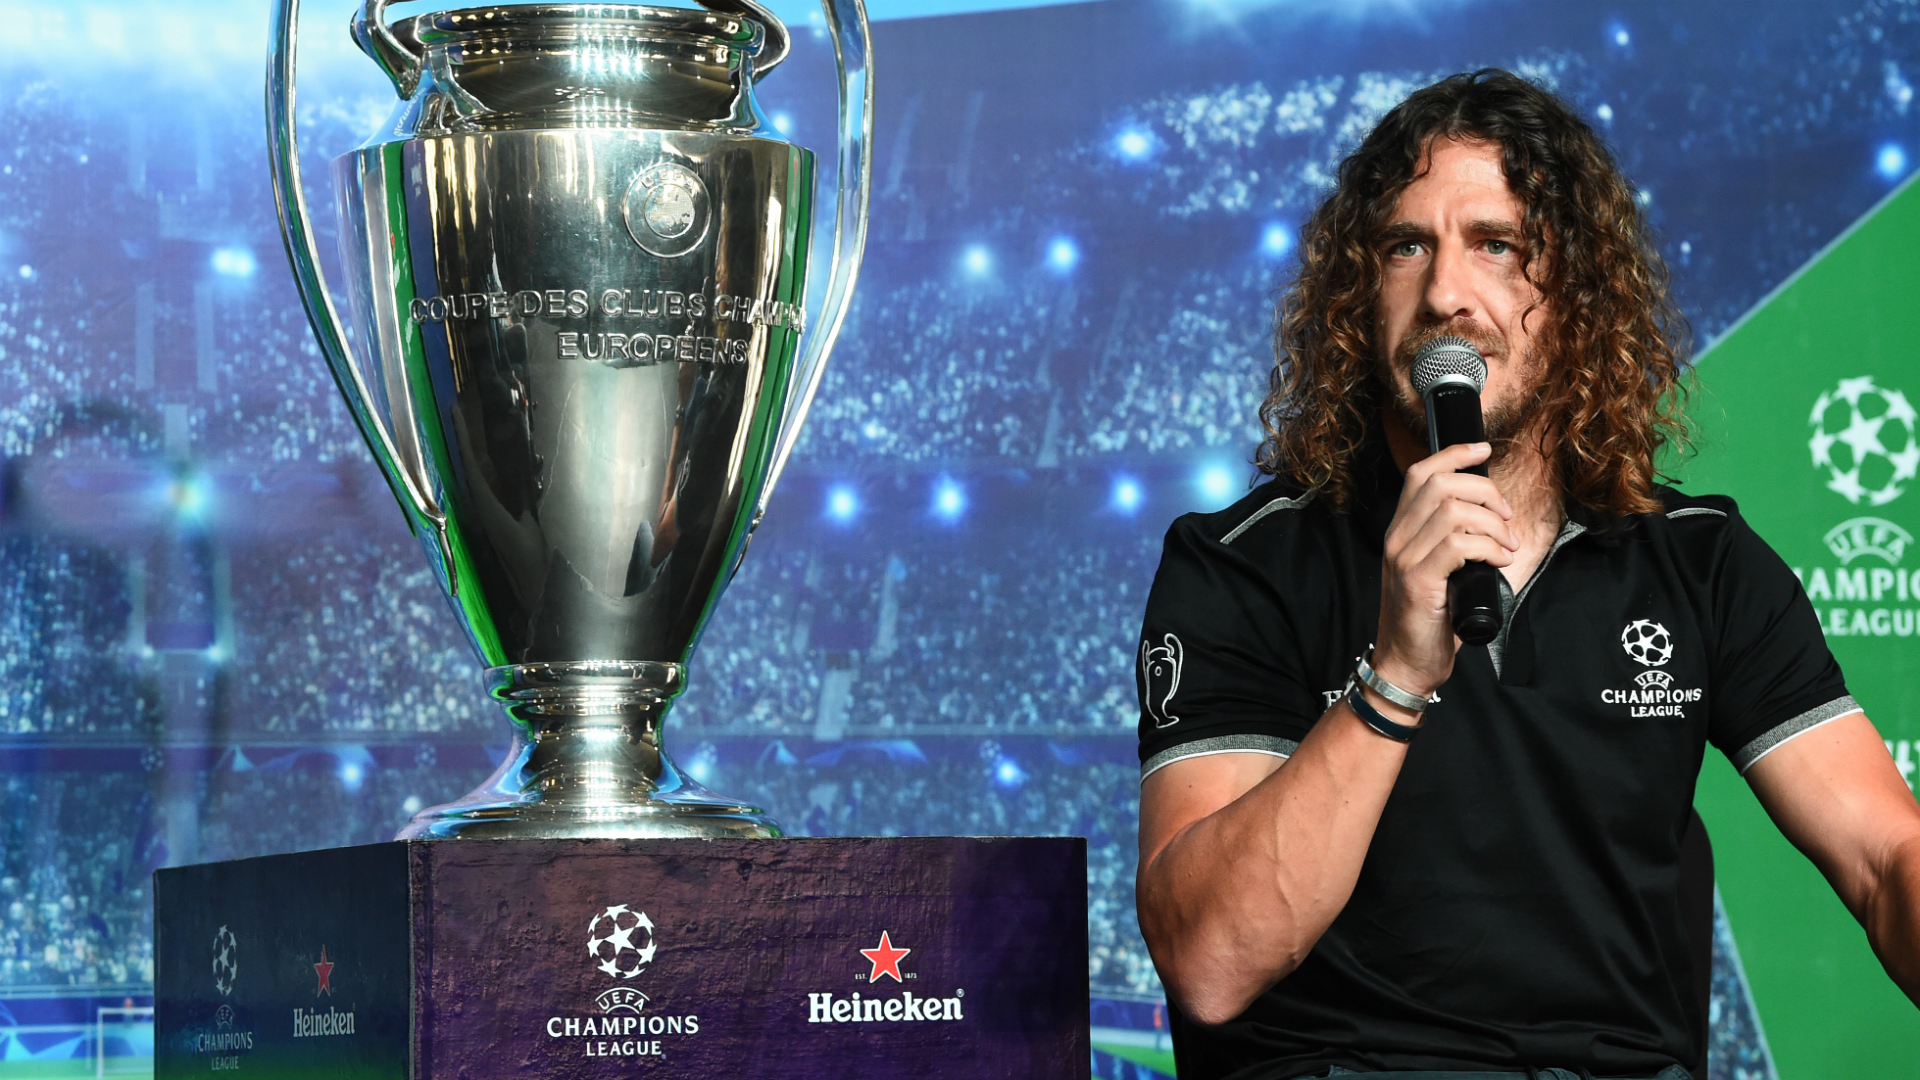 Carles Puyol UEFA Champions League Trophy Tour Presented by Heineken, Lagos, Nigeria